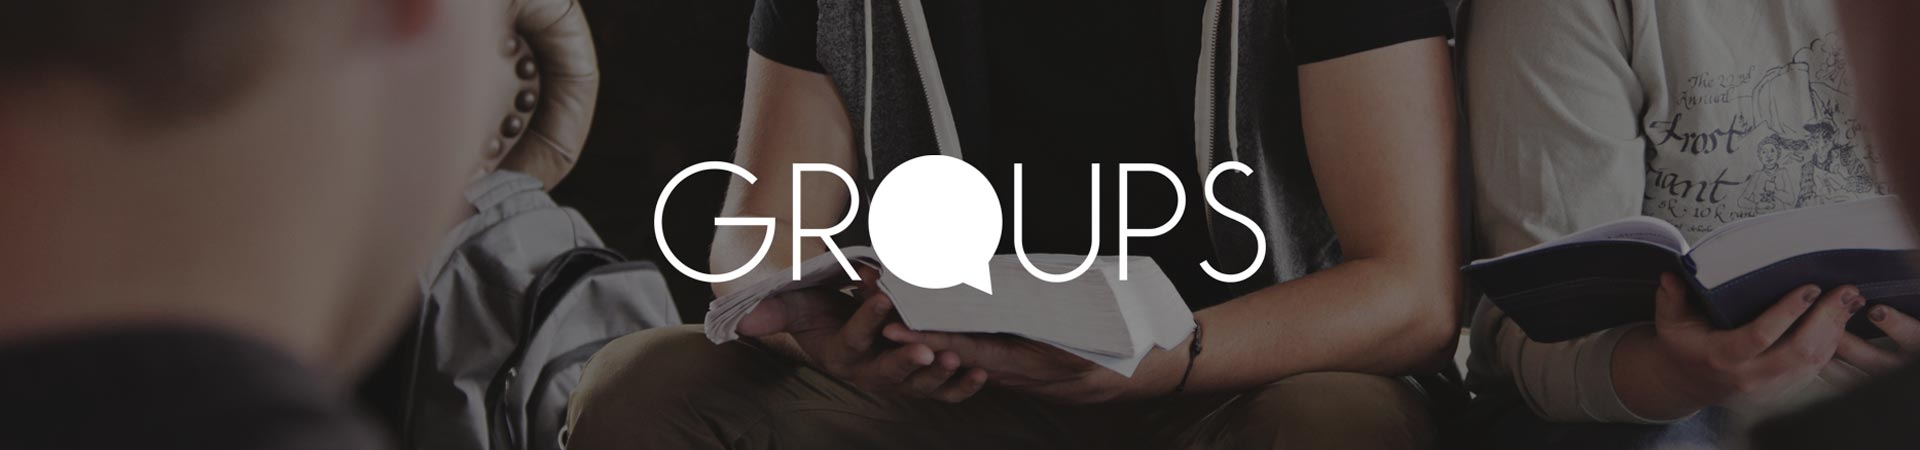 Groups - Small Group - Grace Community Church